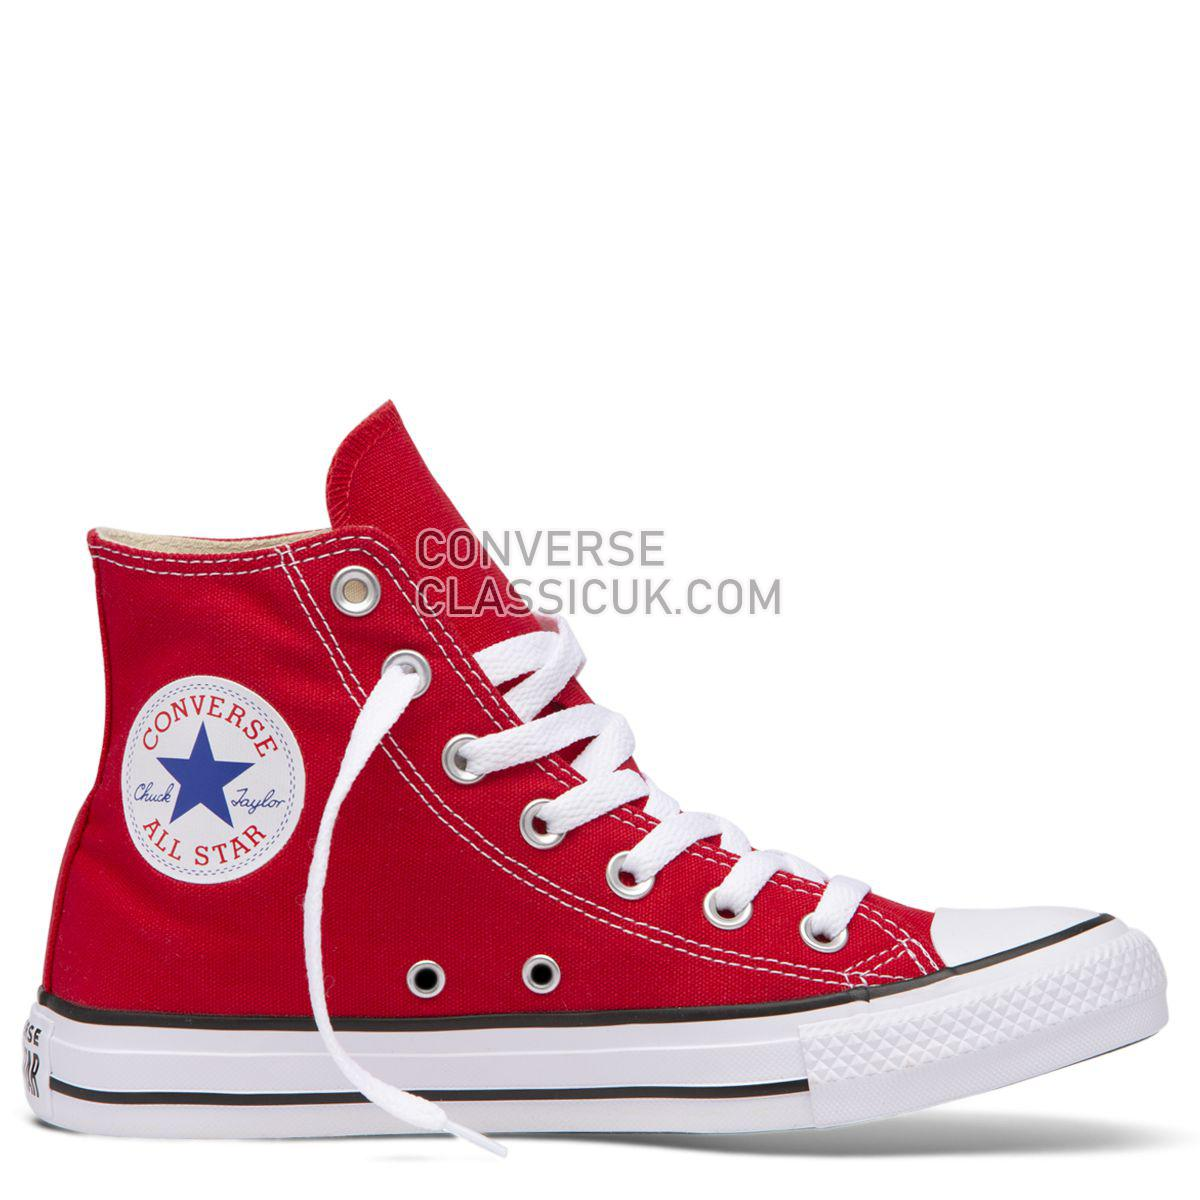 Converse Chuck Taylor All Star Classic Colour High Top Red Mens Womens Unisex 19621 Red Shoes